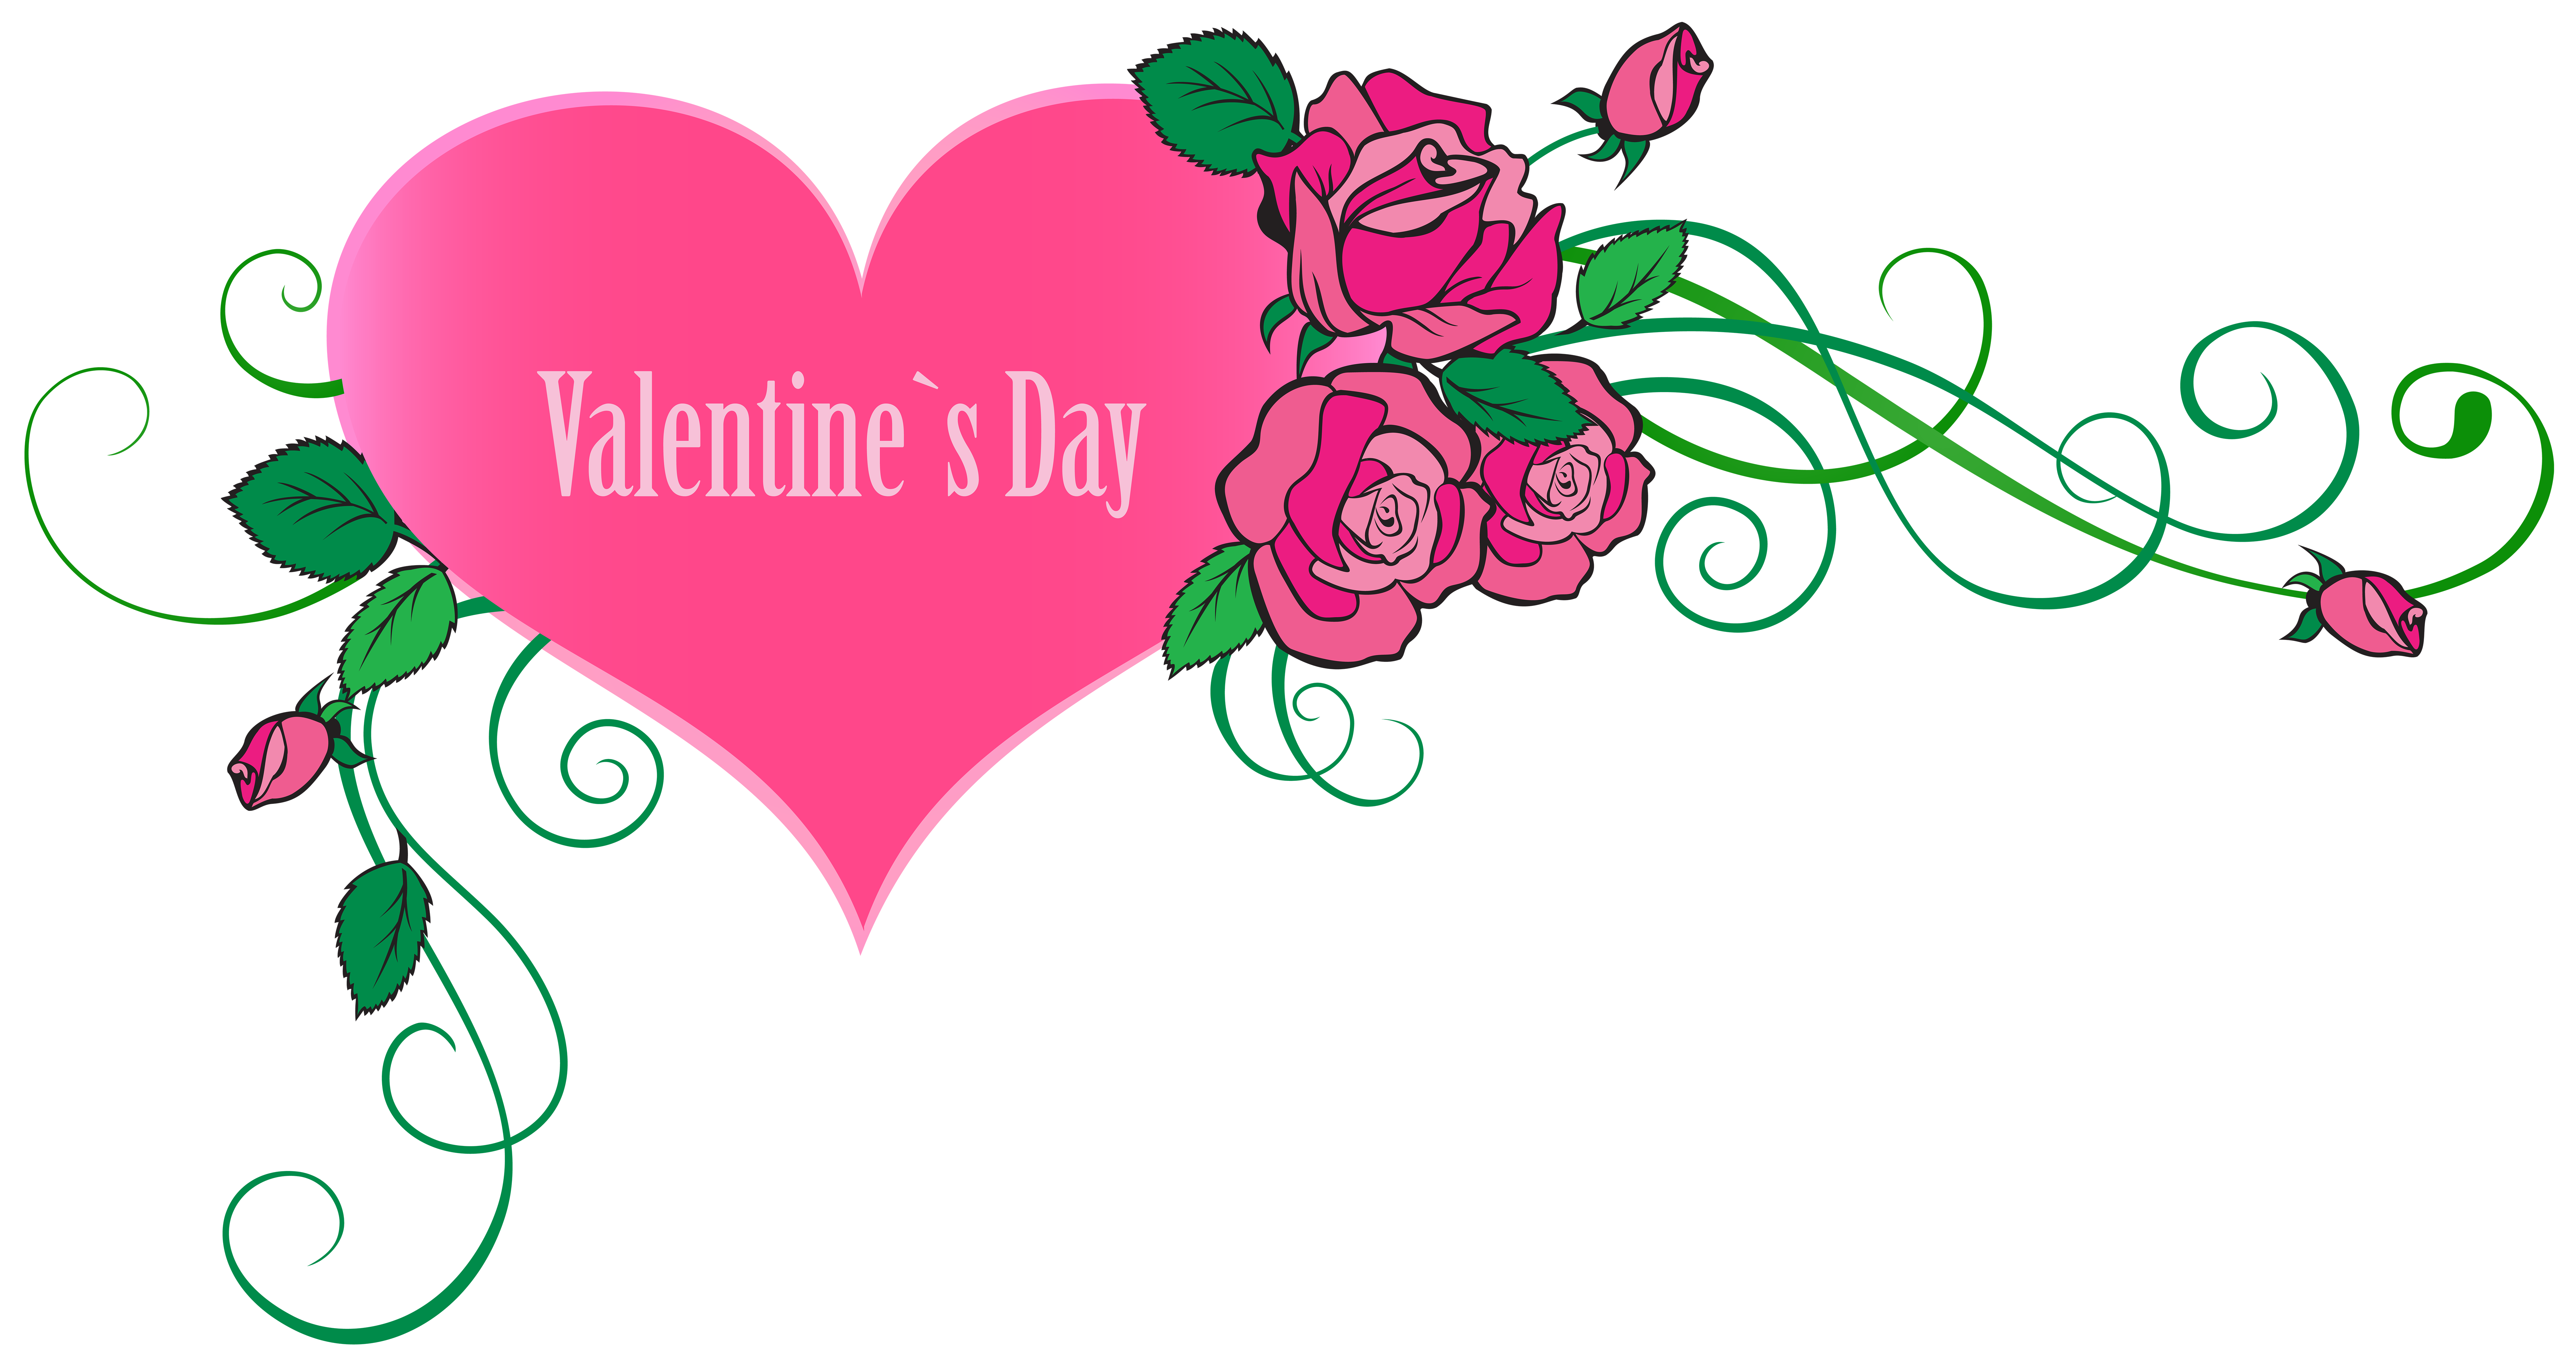 8000x4253 Happy Valentine's Day Heart With Roses Transparent Png Clip Art